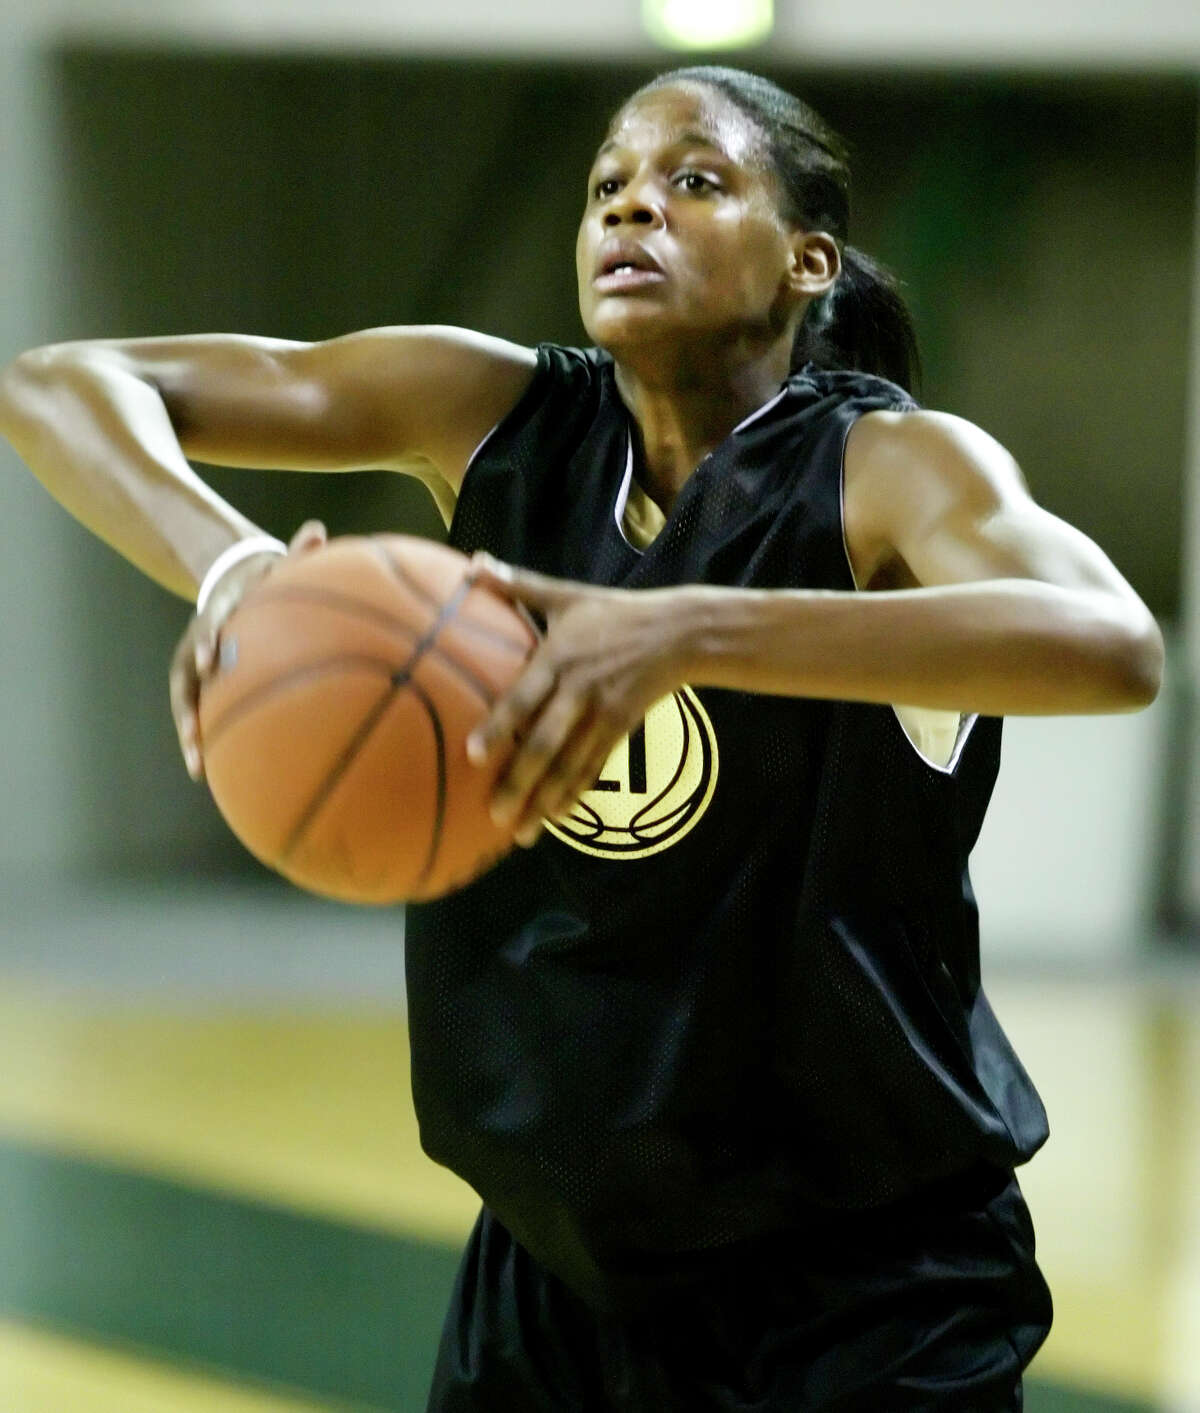 Clear Brook alumna Chameka Scott, who also starred for Baylor's 2005 NCAA championship team, was honored by the school last week both for her sterling career on the court and her successful fight against cancer.